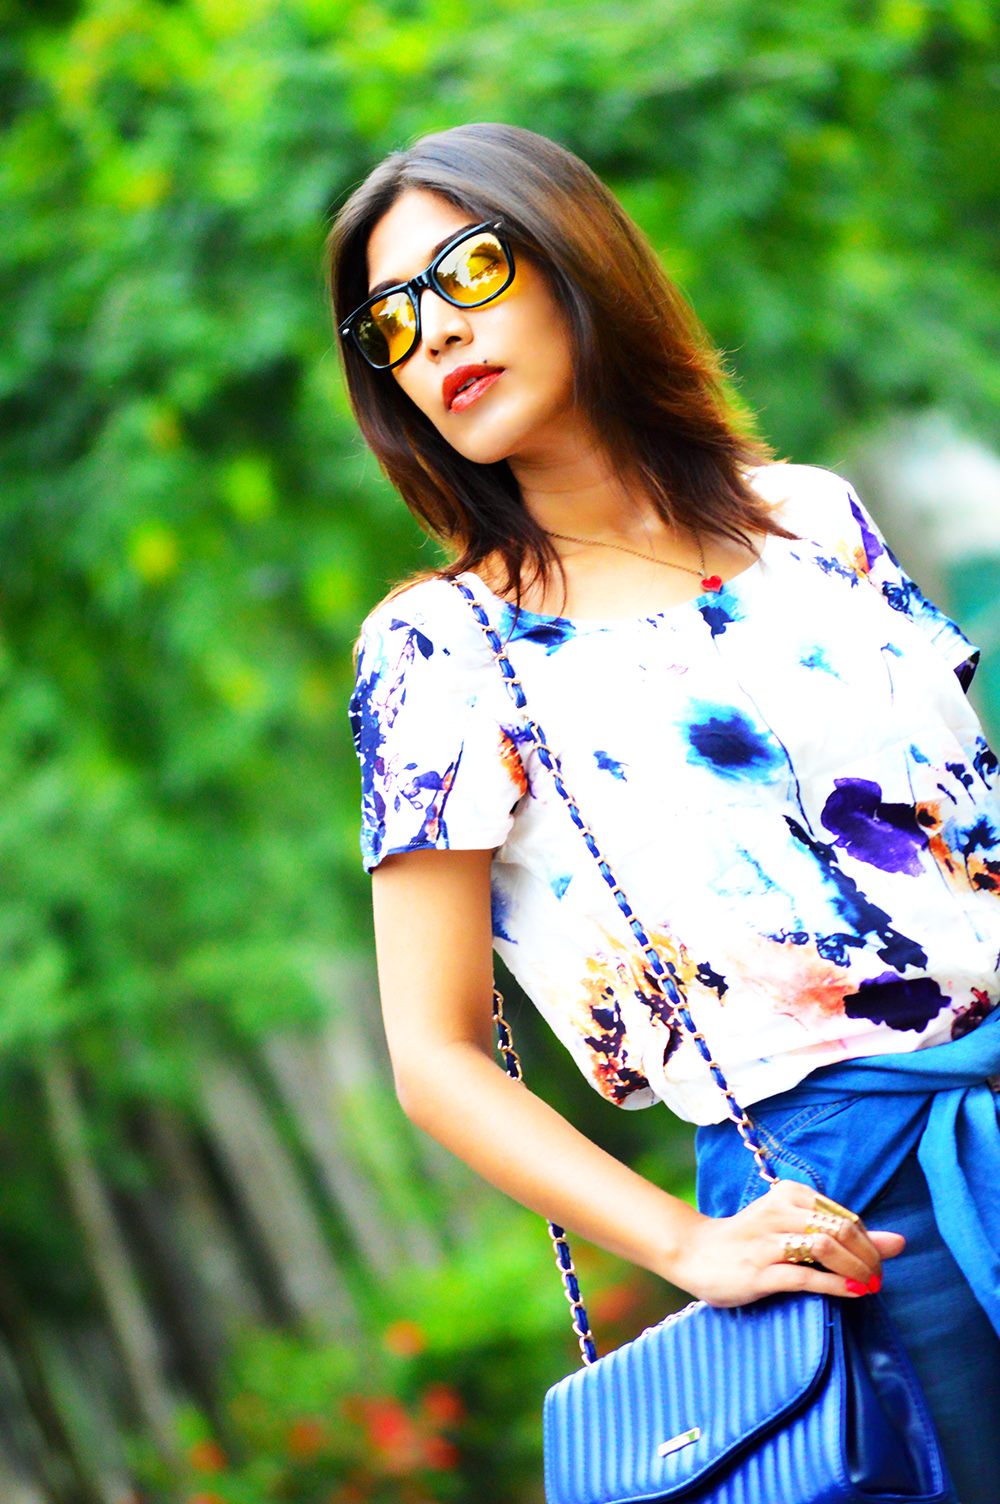 Fashion, Style, Photography, Street Style, Fashion Photography, Denim, Only Top, New look Denim Shirt, Casual Wear, Street Style Photography, Denim Style-5